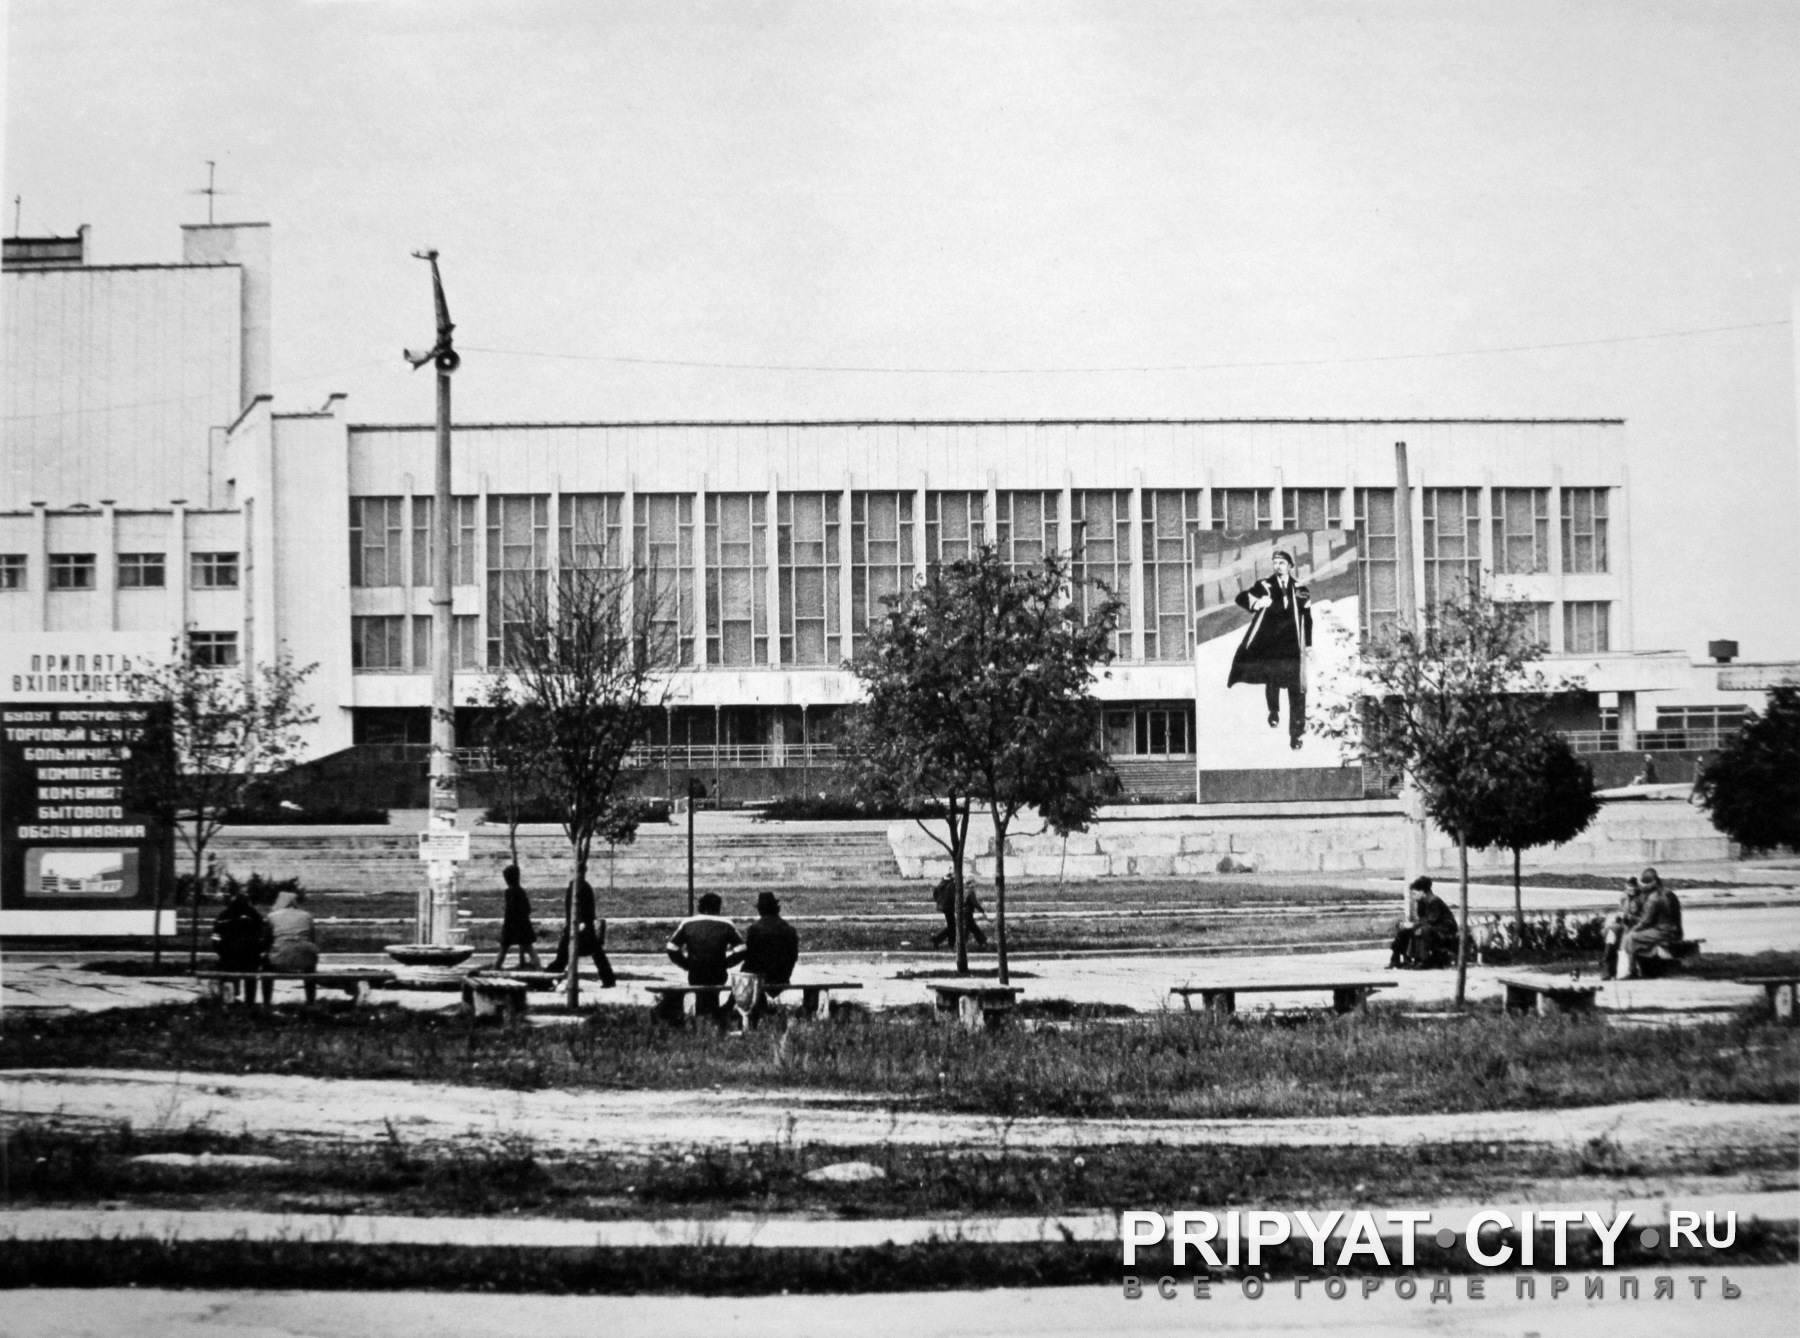 The Palace of Culture prior to gaining its iconic signage.